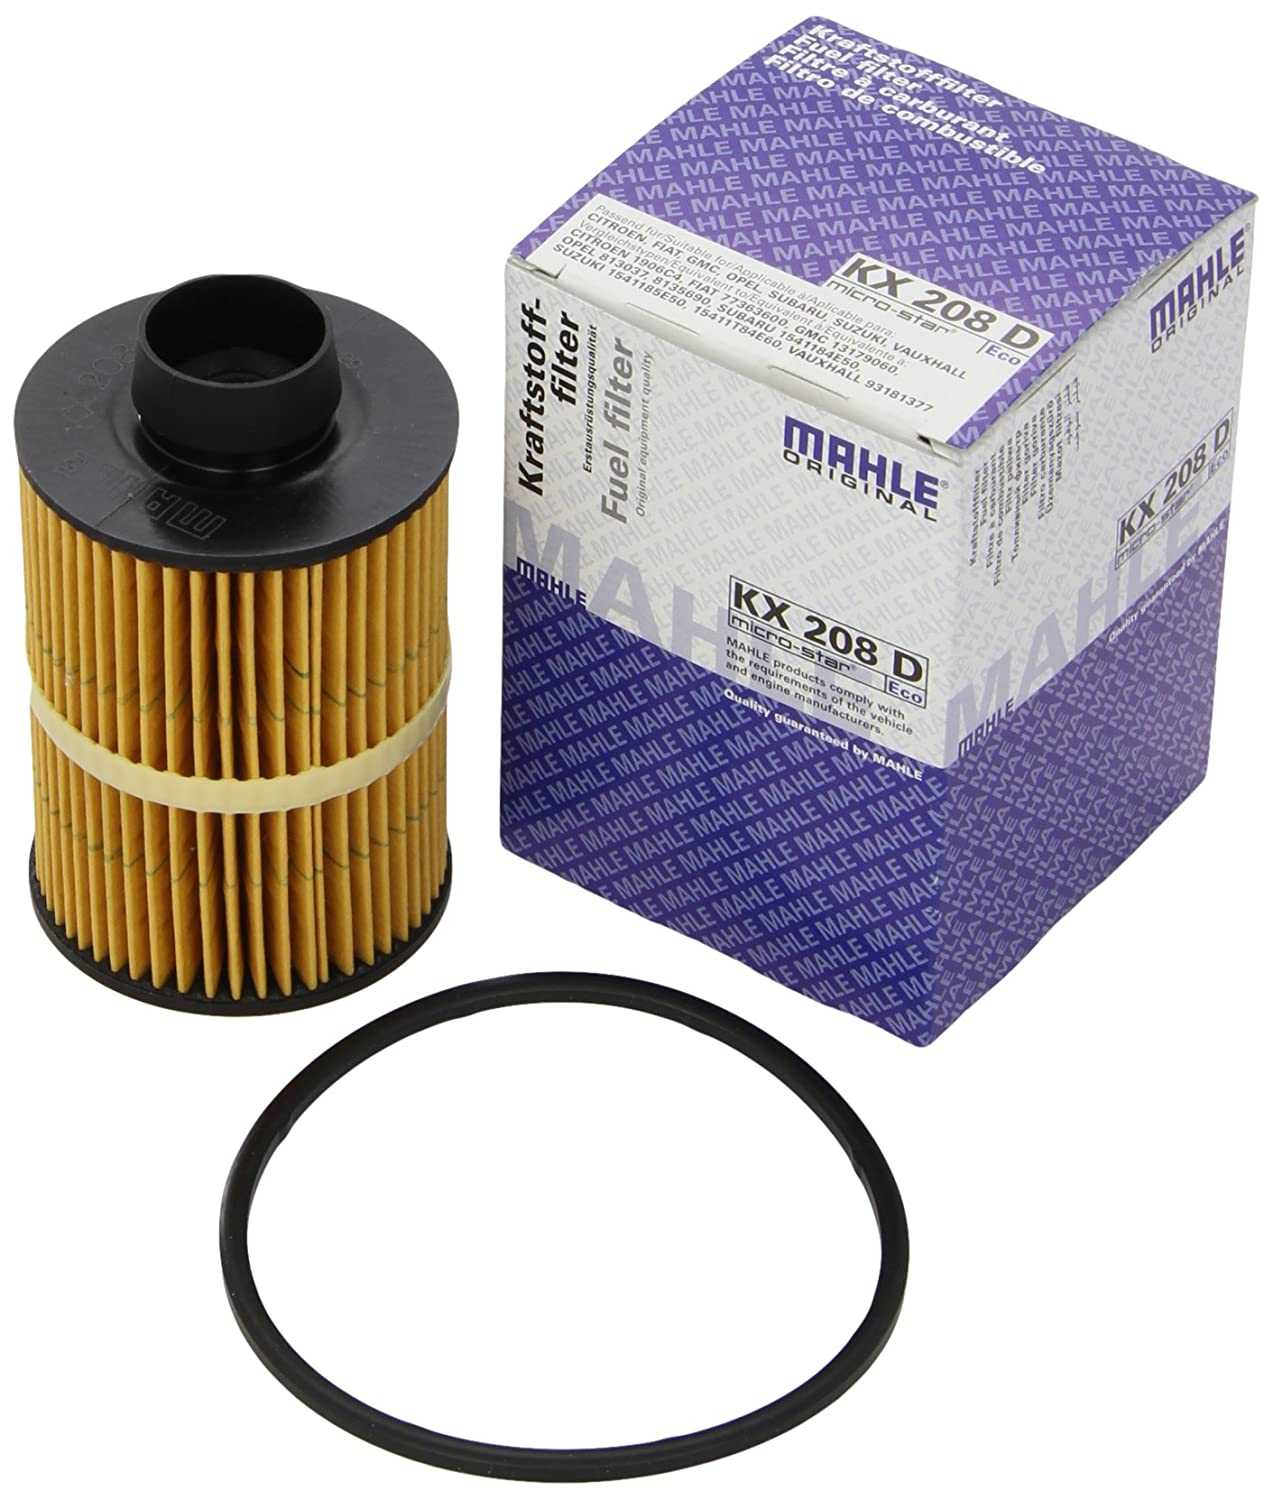 Knecht Kx 208d Fuel Filter Car Motorbike Gmc